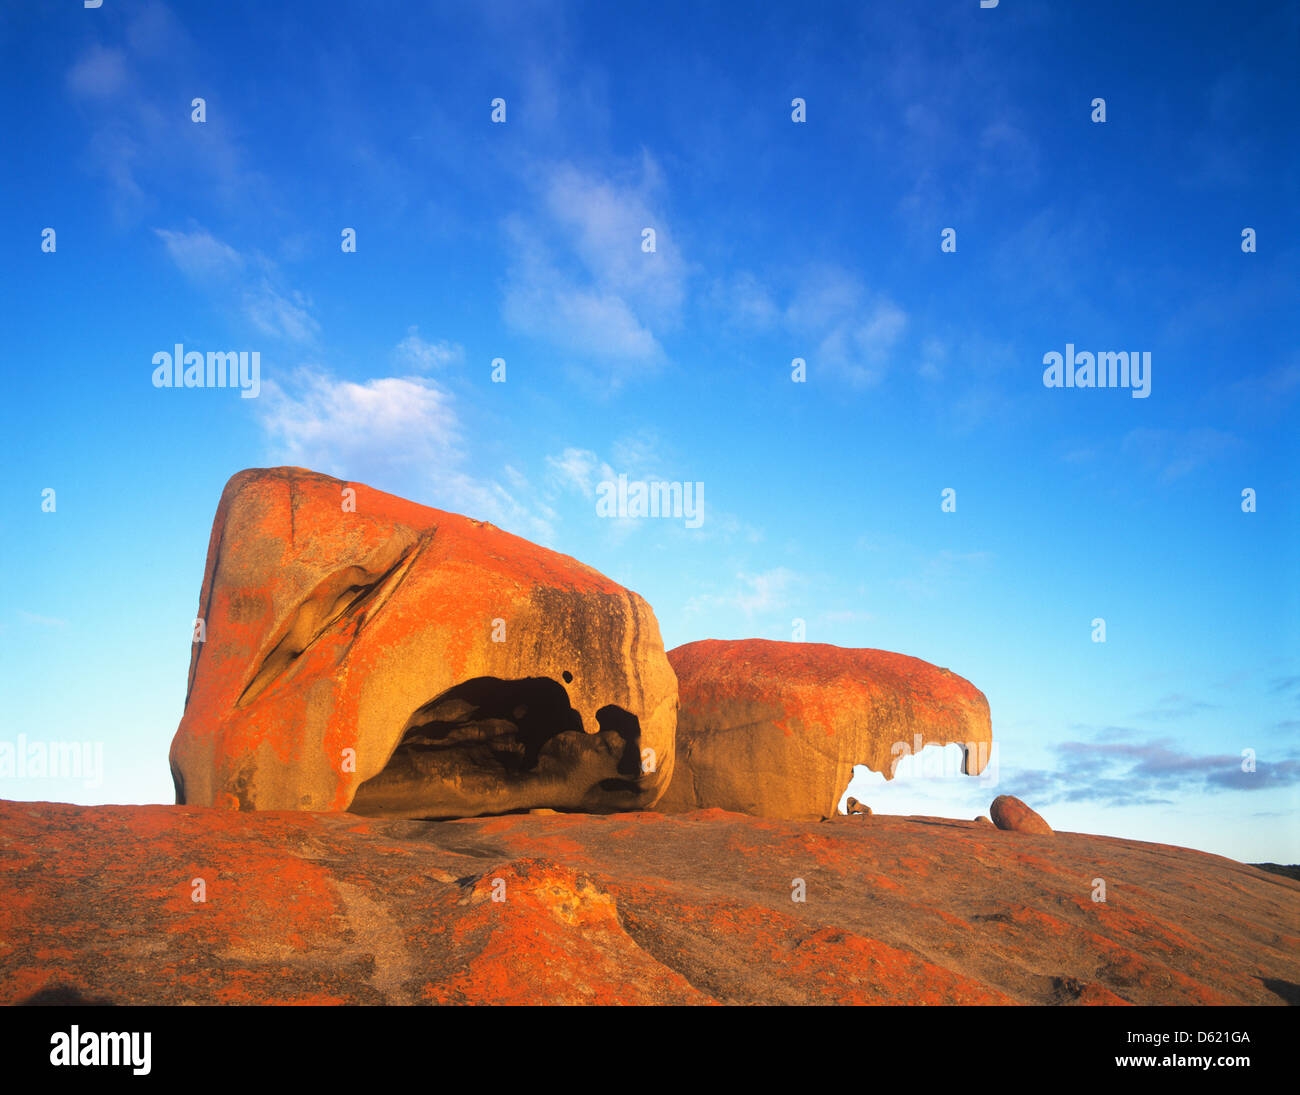 South Australia, Kangaroo Island, Flinders Chase National Park, view of Remarkable Rocks - Stock Image